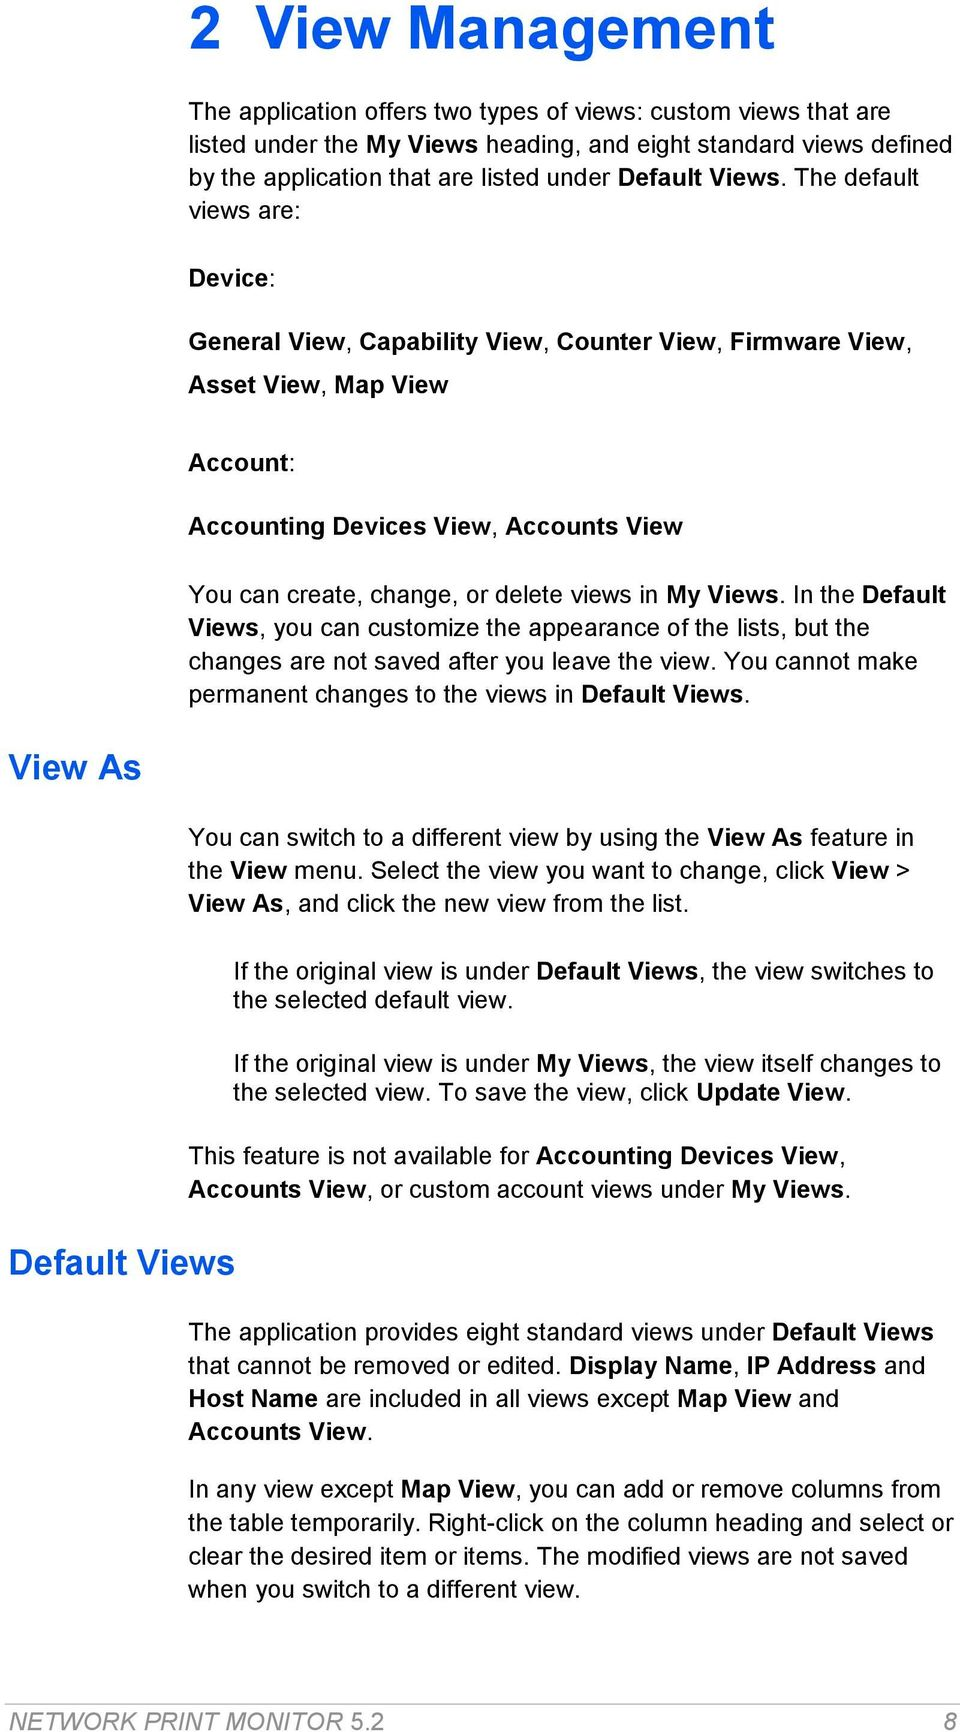 The default views are: Device: General View, Capability View, Counter View, Firmware View, Asset View, Map View Account: Accounting Devices View, Accounts View You can create, change, or delete views